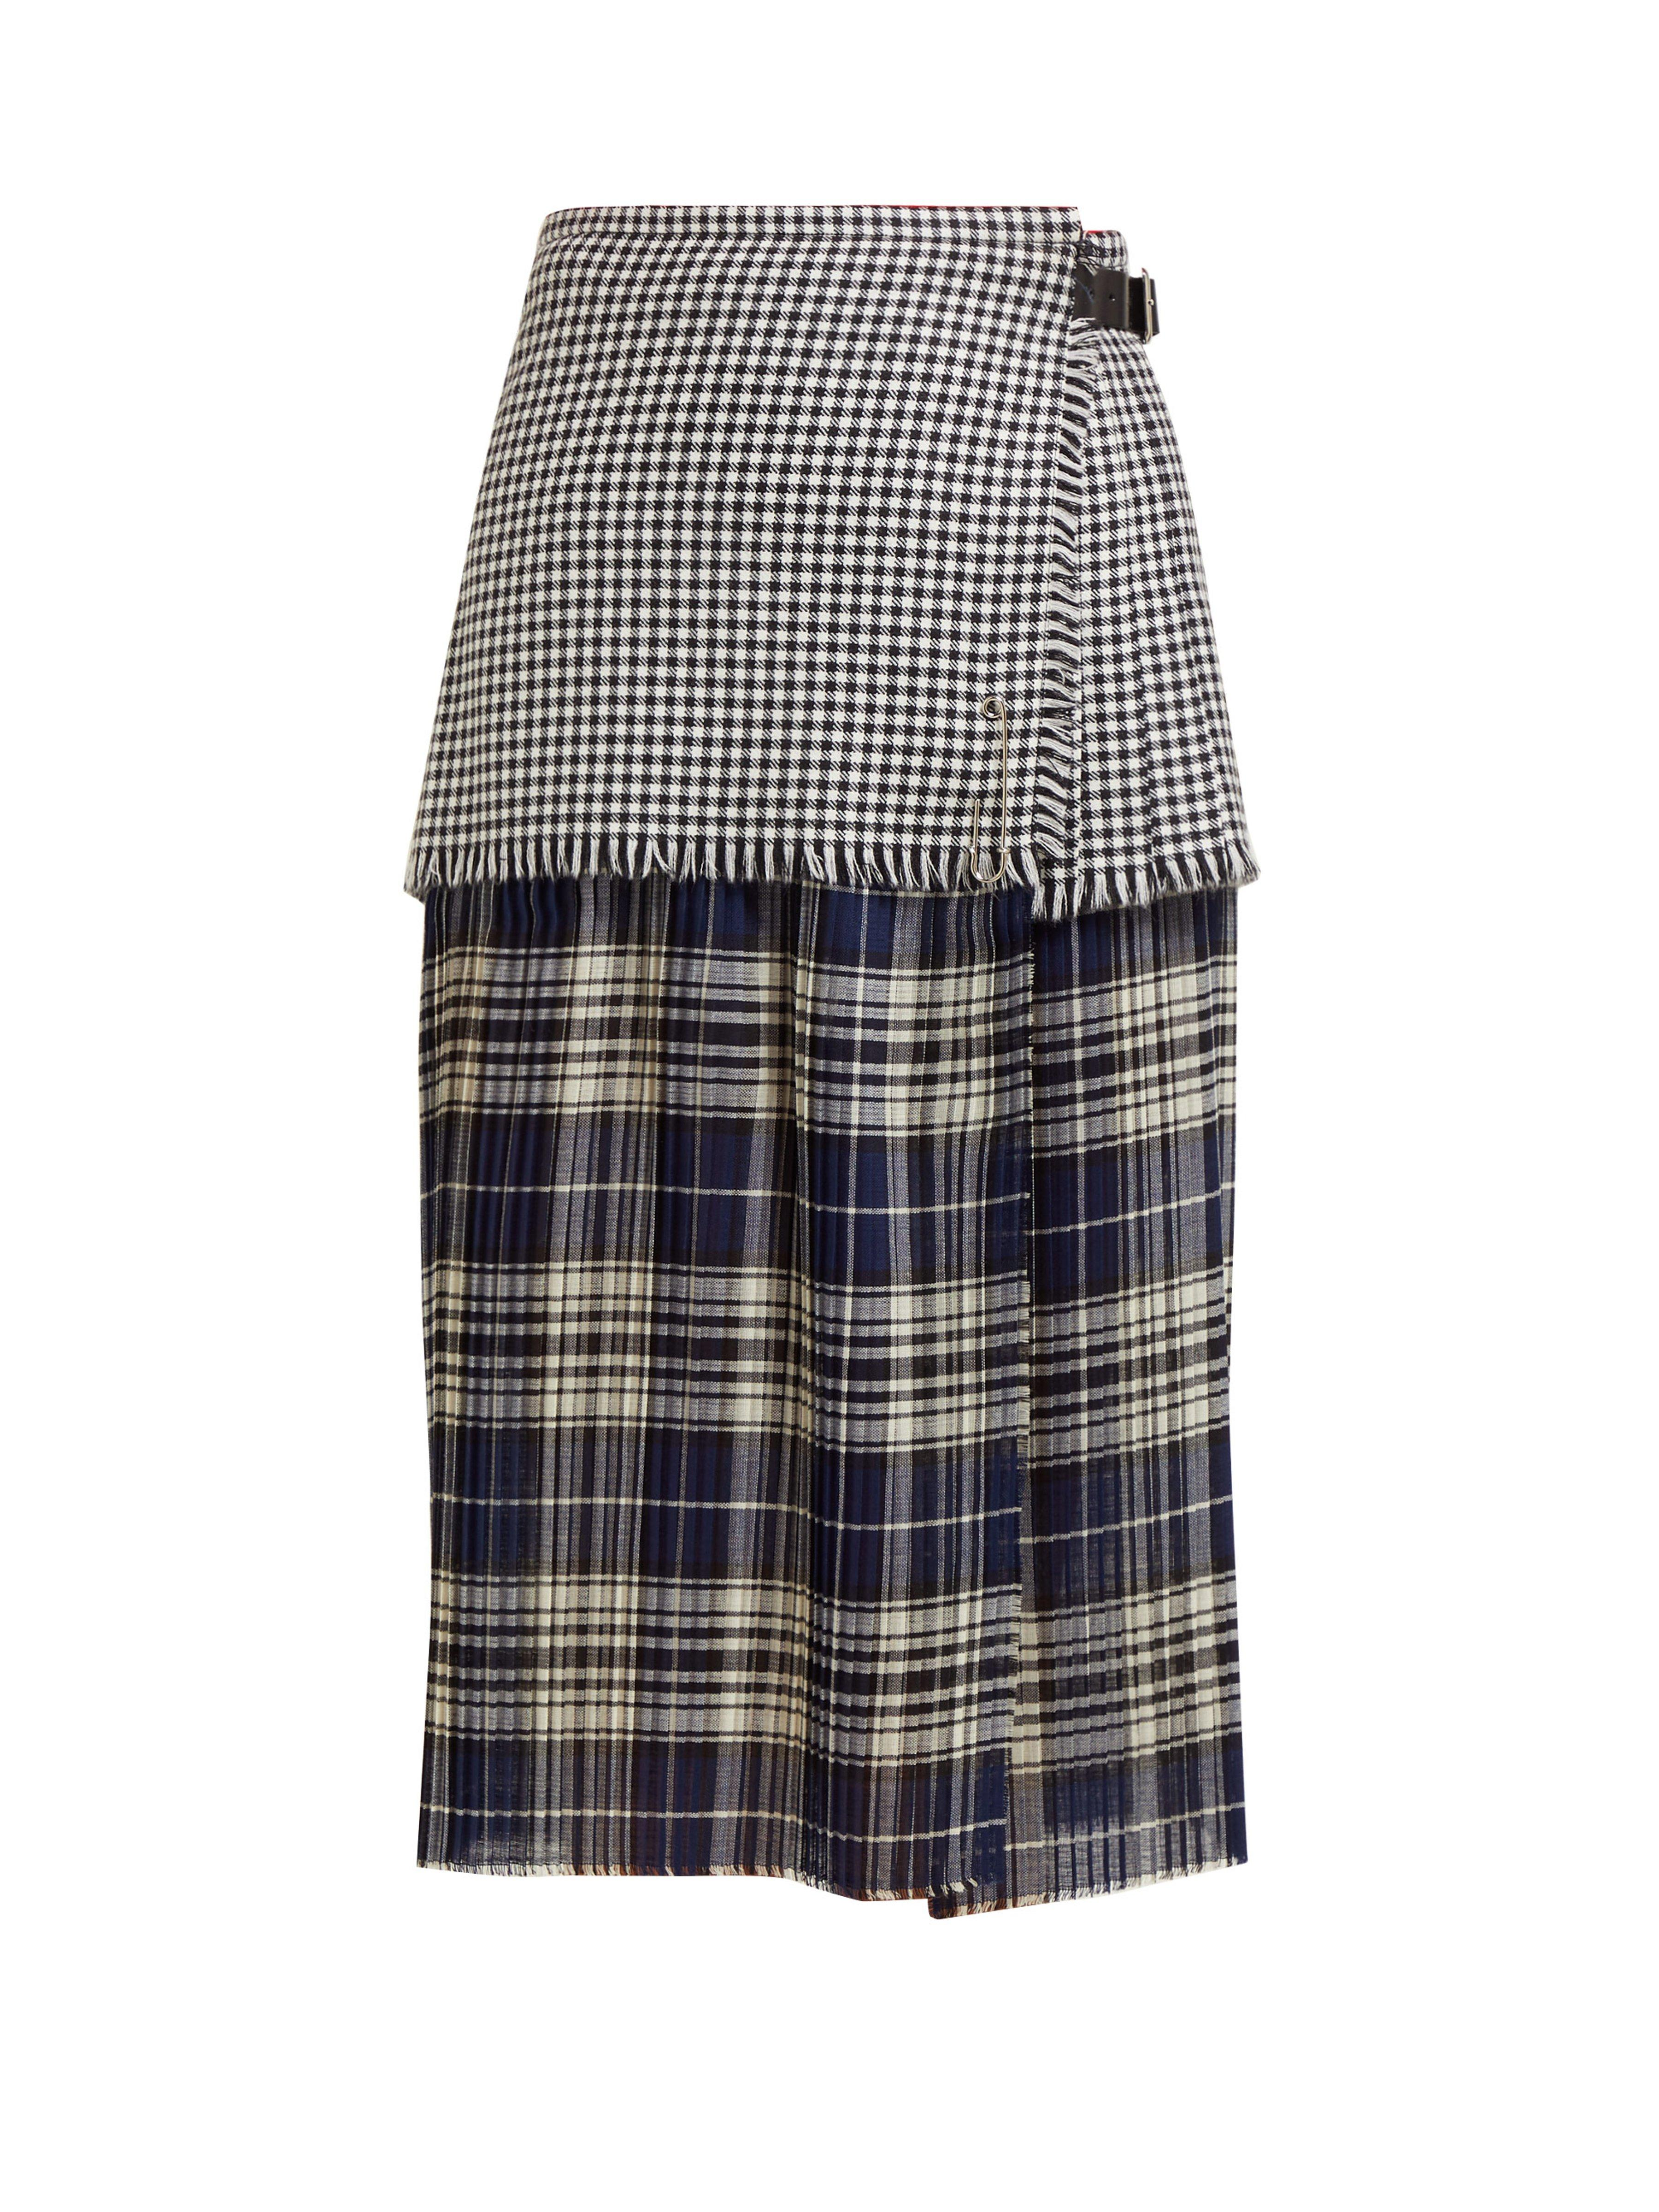 18bf6d45c30cdc Le Kilt Mia 72cm Houndstooth And Tartan Pleated Wool Skirt in Gray ...